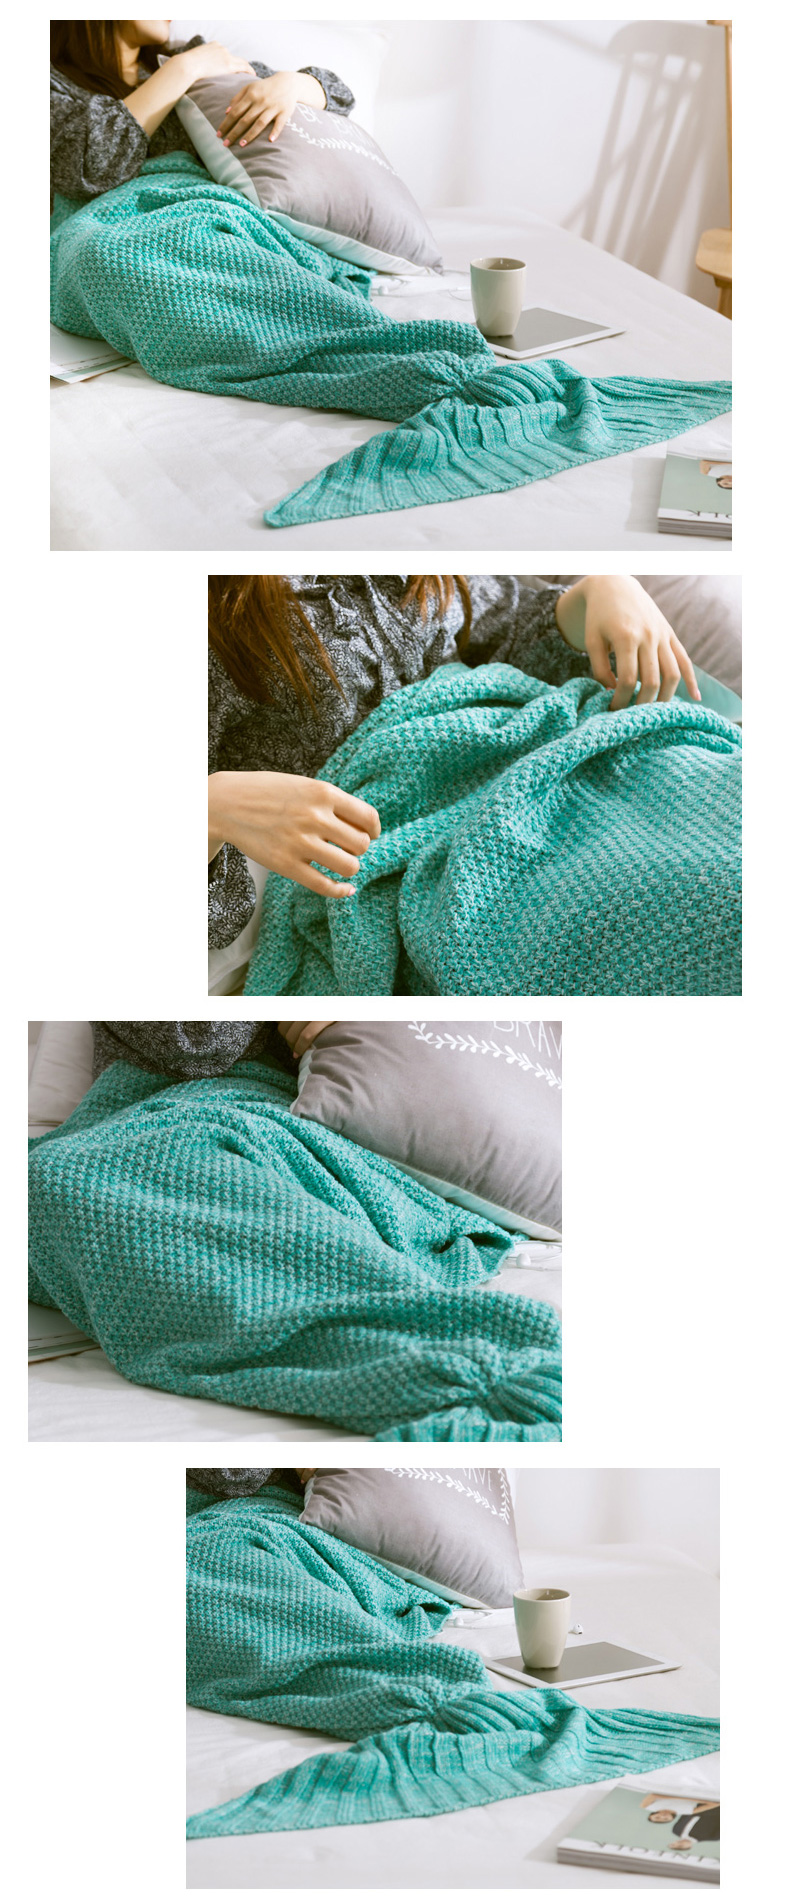 Honana WX-29 3 Size Yarn Knitting Mermaid Tail Blankets Fibers Warm Soft Home Office Sleep Bag Bed Mat